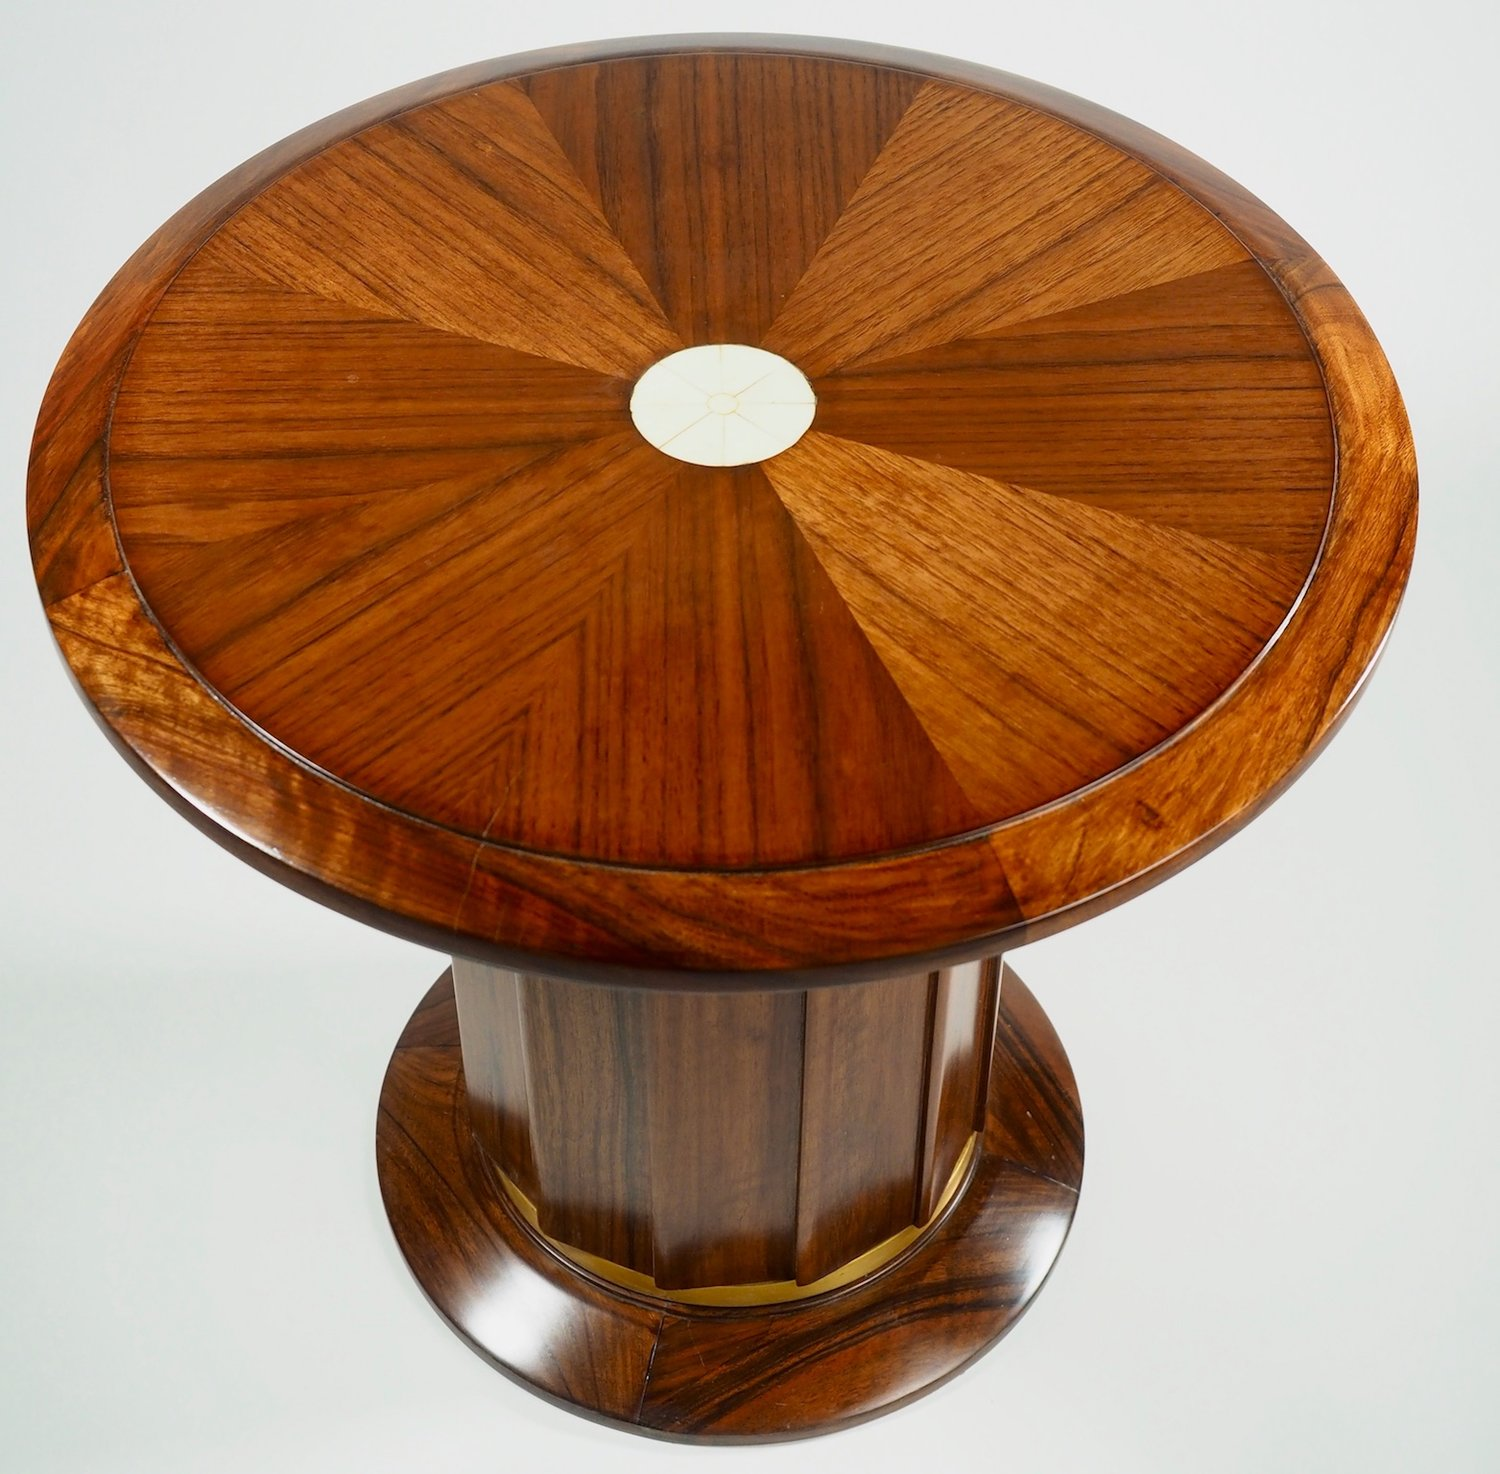 Dominique+side+table+w-bone+inlay+652.jpg